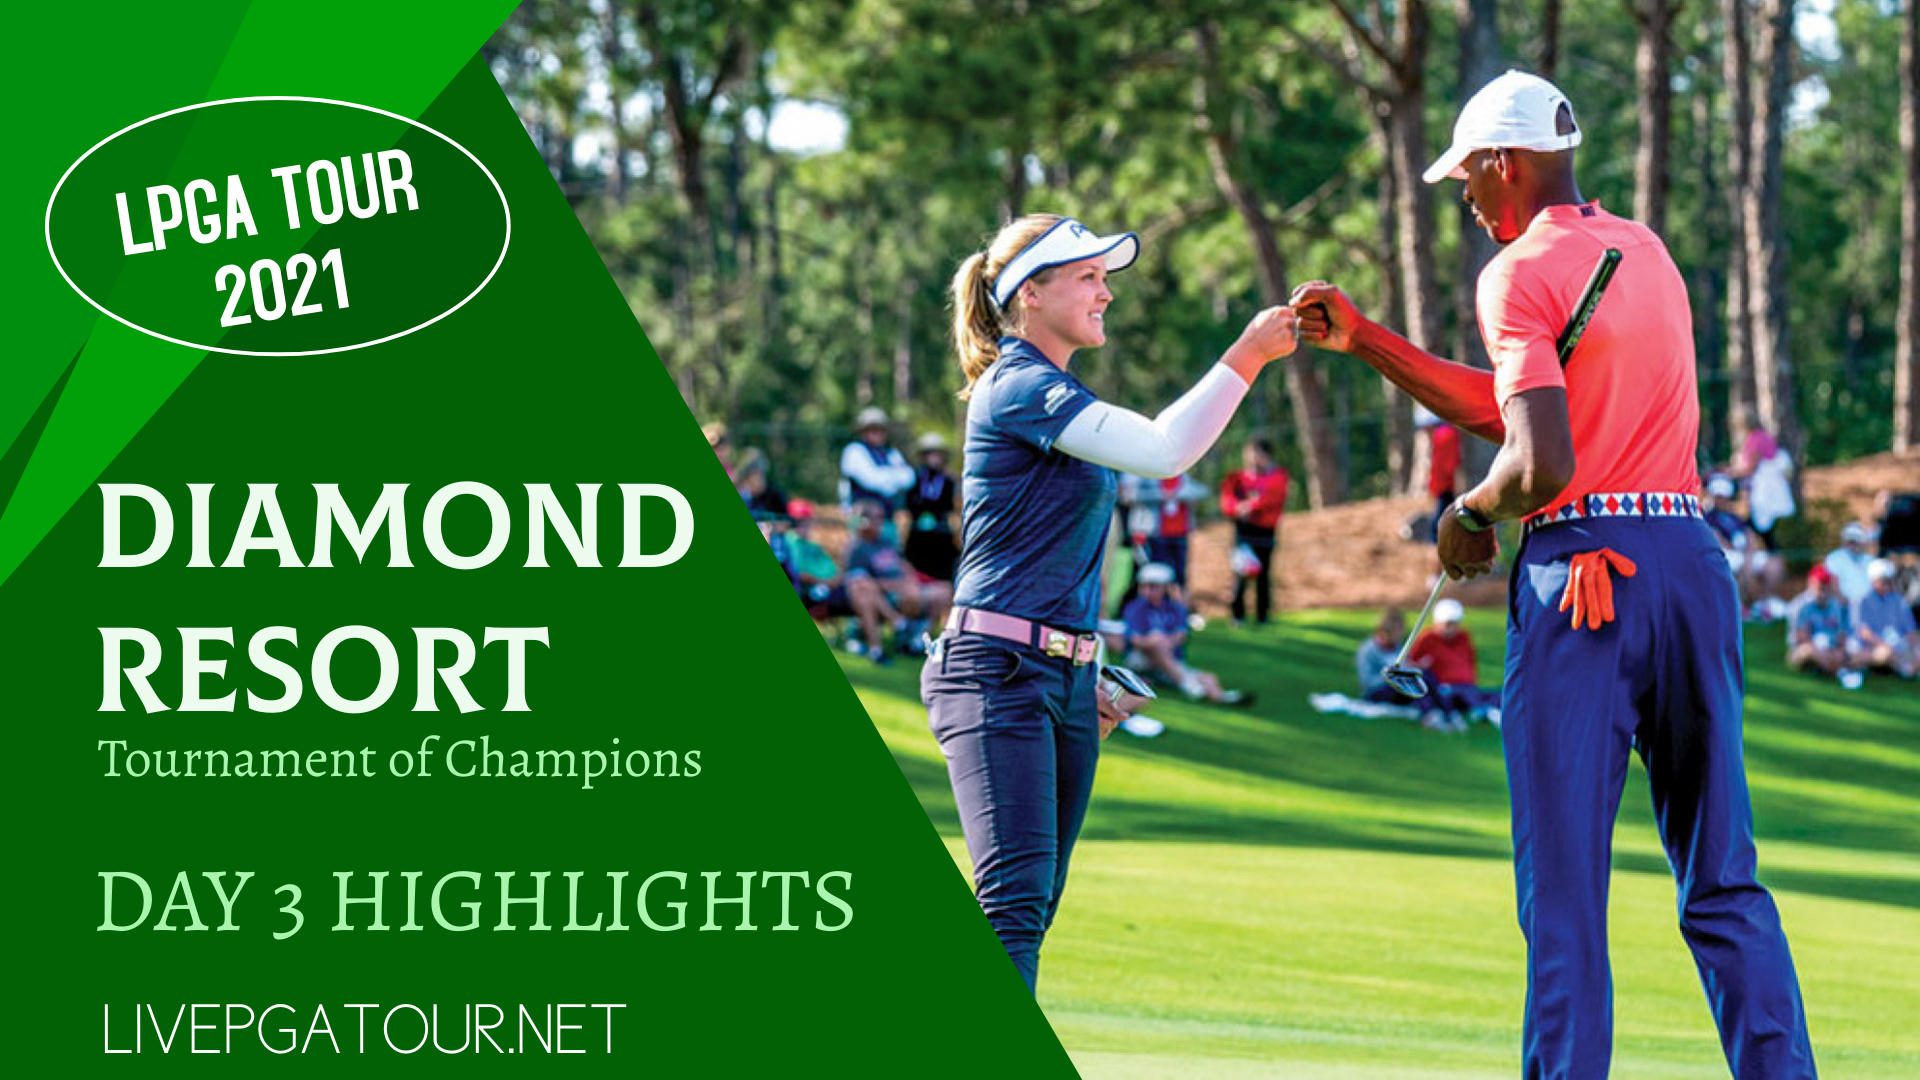 Tournament Of Champions Day 3 Highlights 2021 LPGA Tour